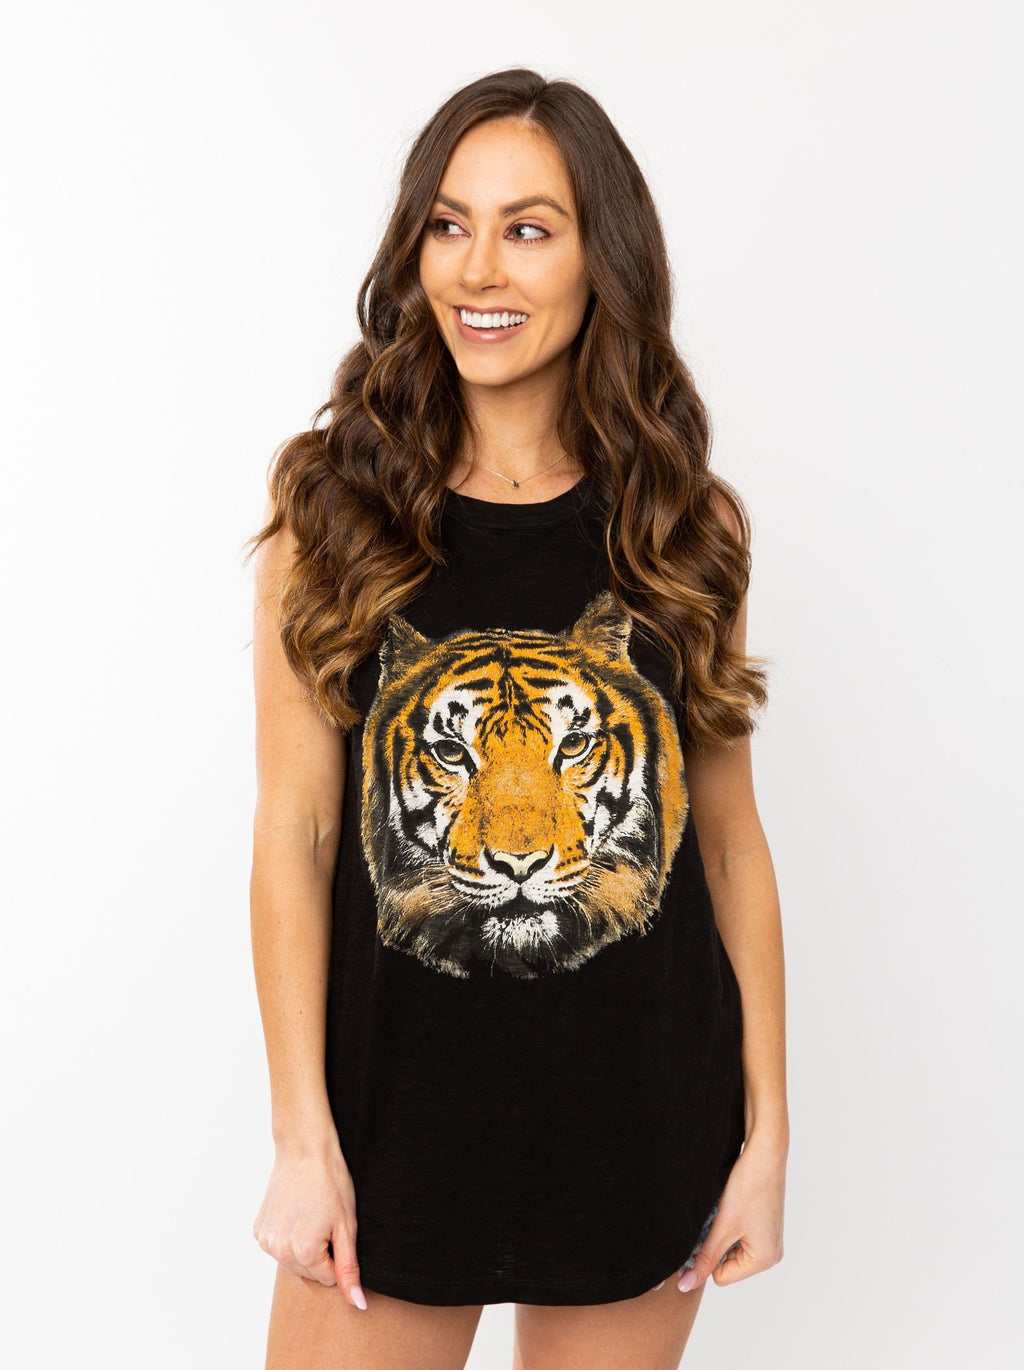 The Big Tiger | Black Tank